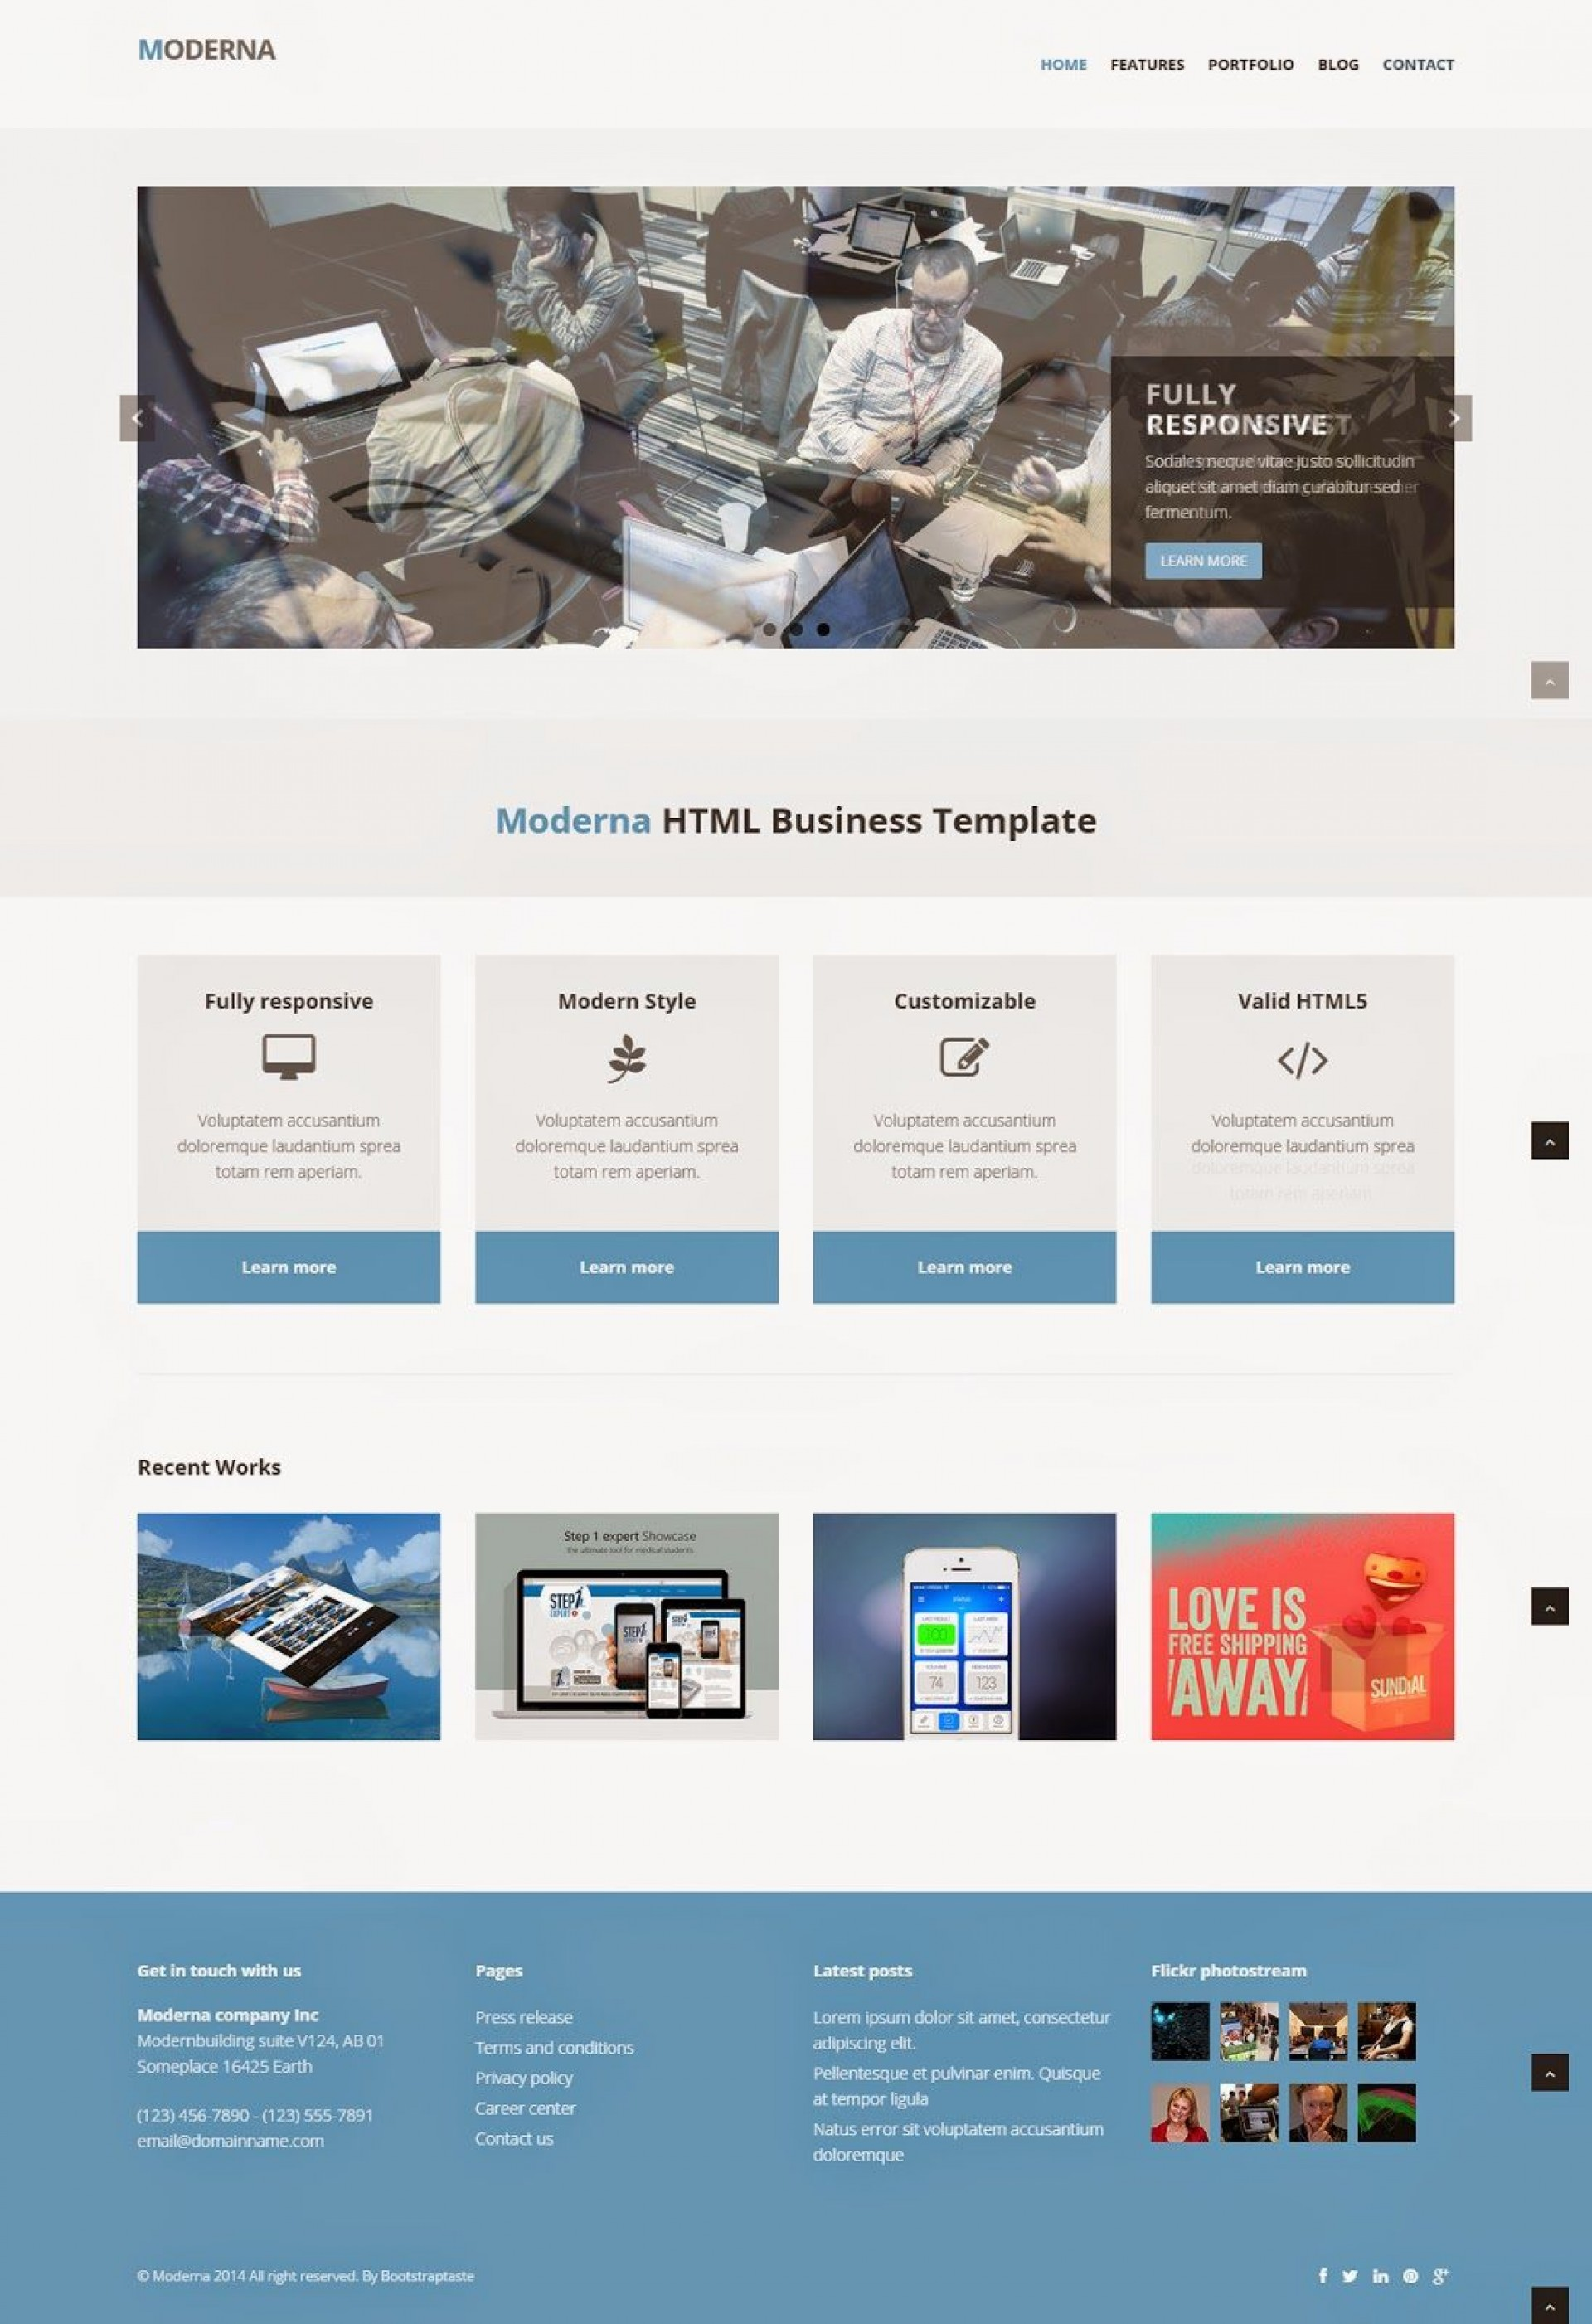 008 Fascinating Web Page Design Template In Asp Net Sample  Asp.net1920